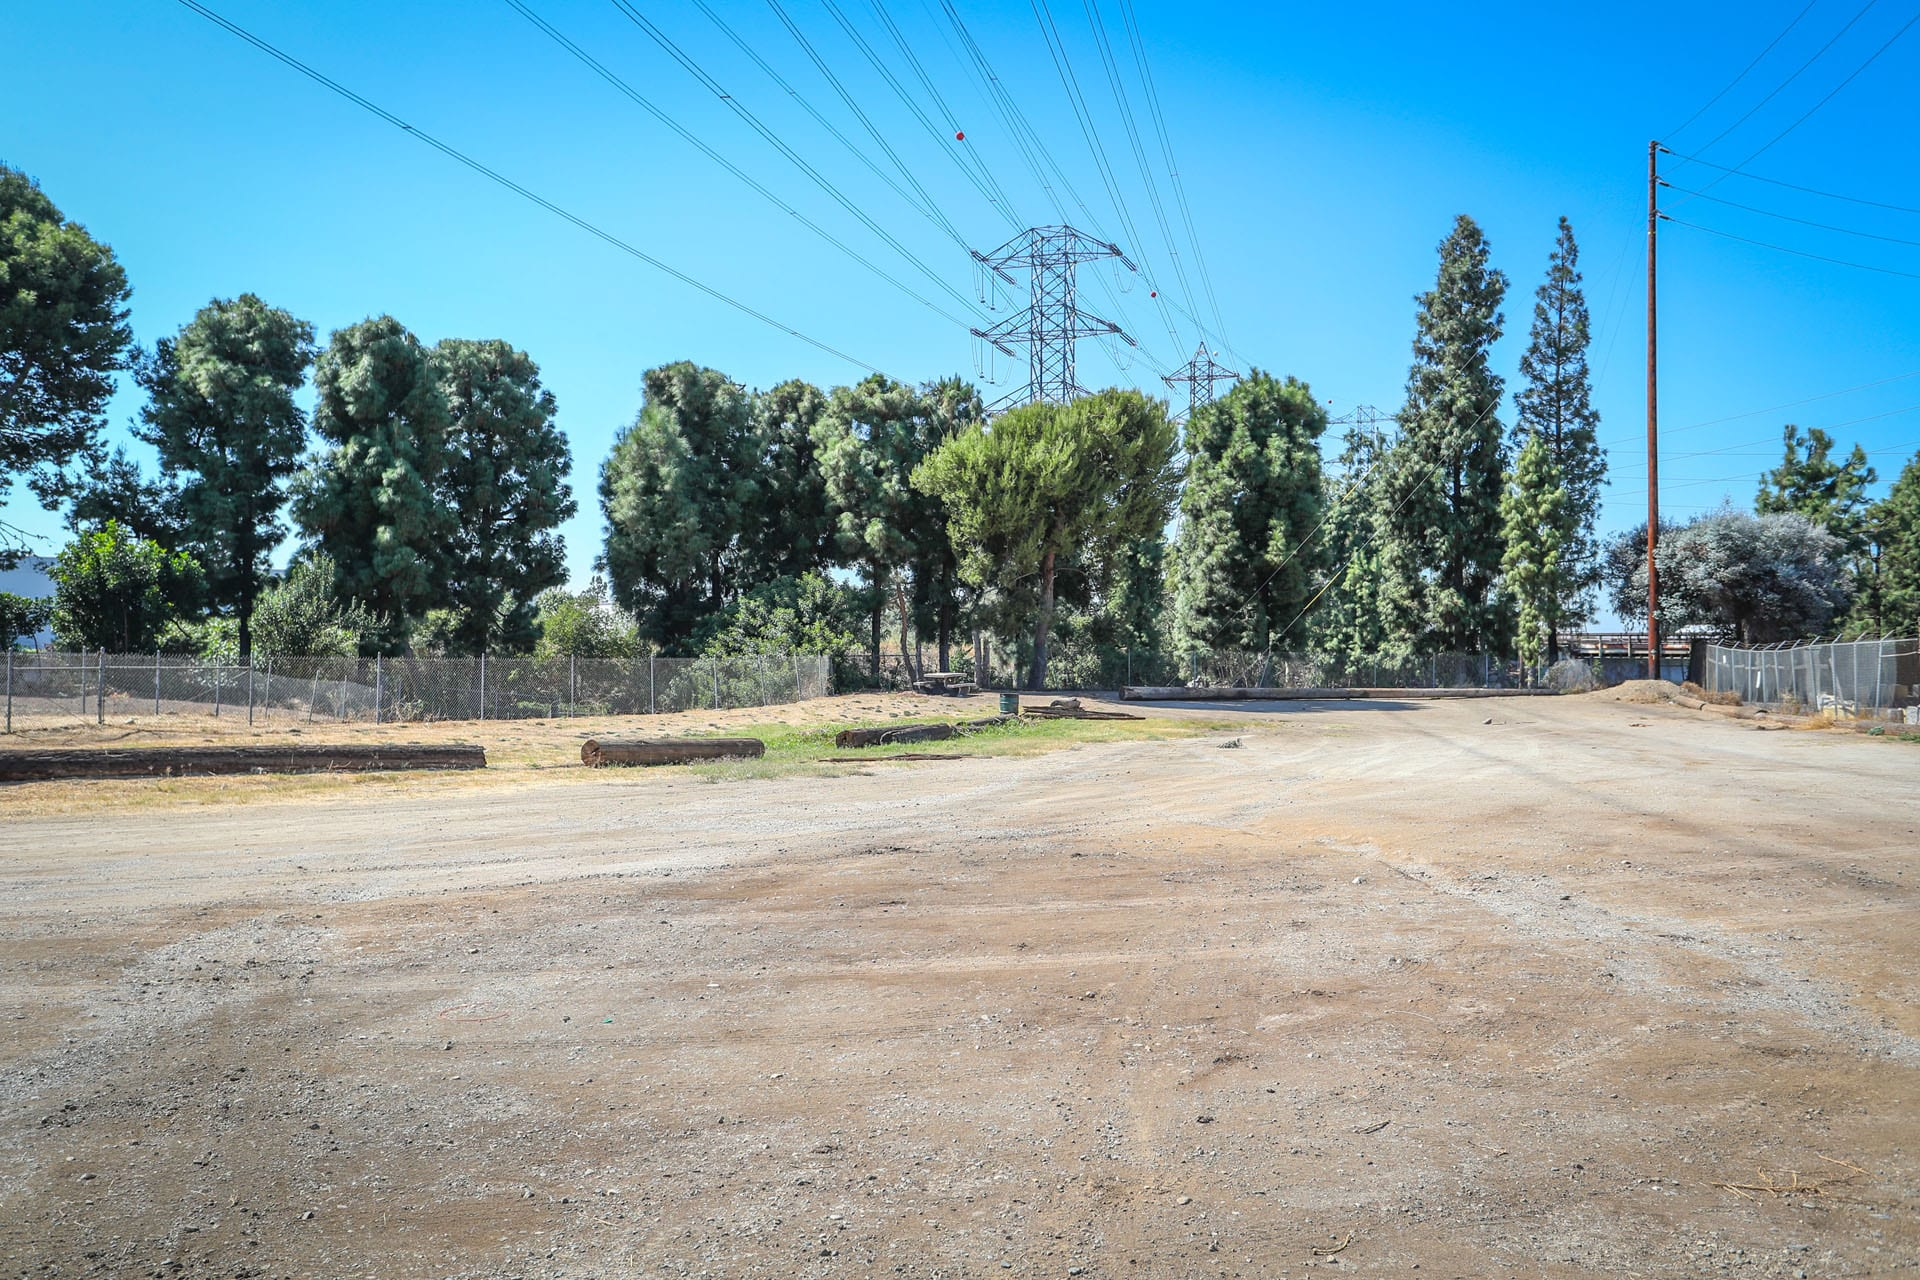 Dirt parking lot and trees